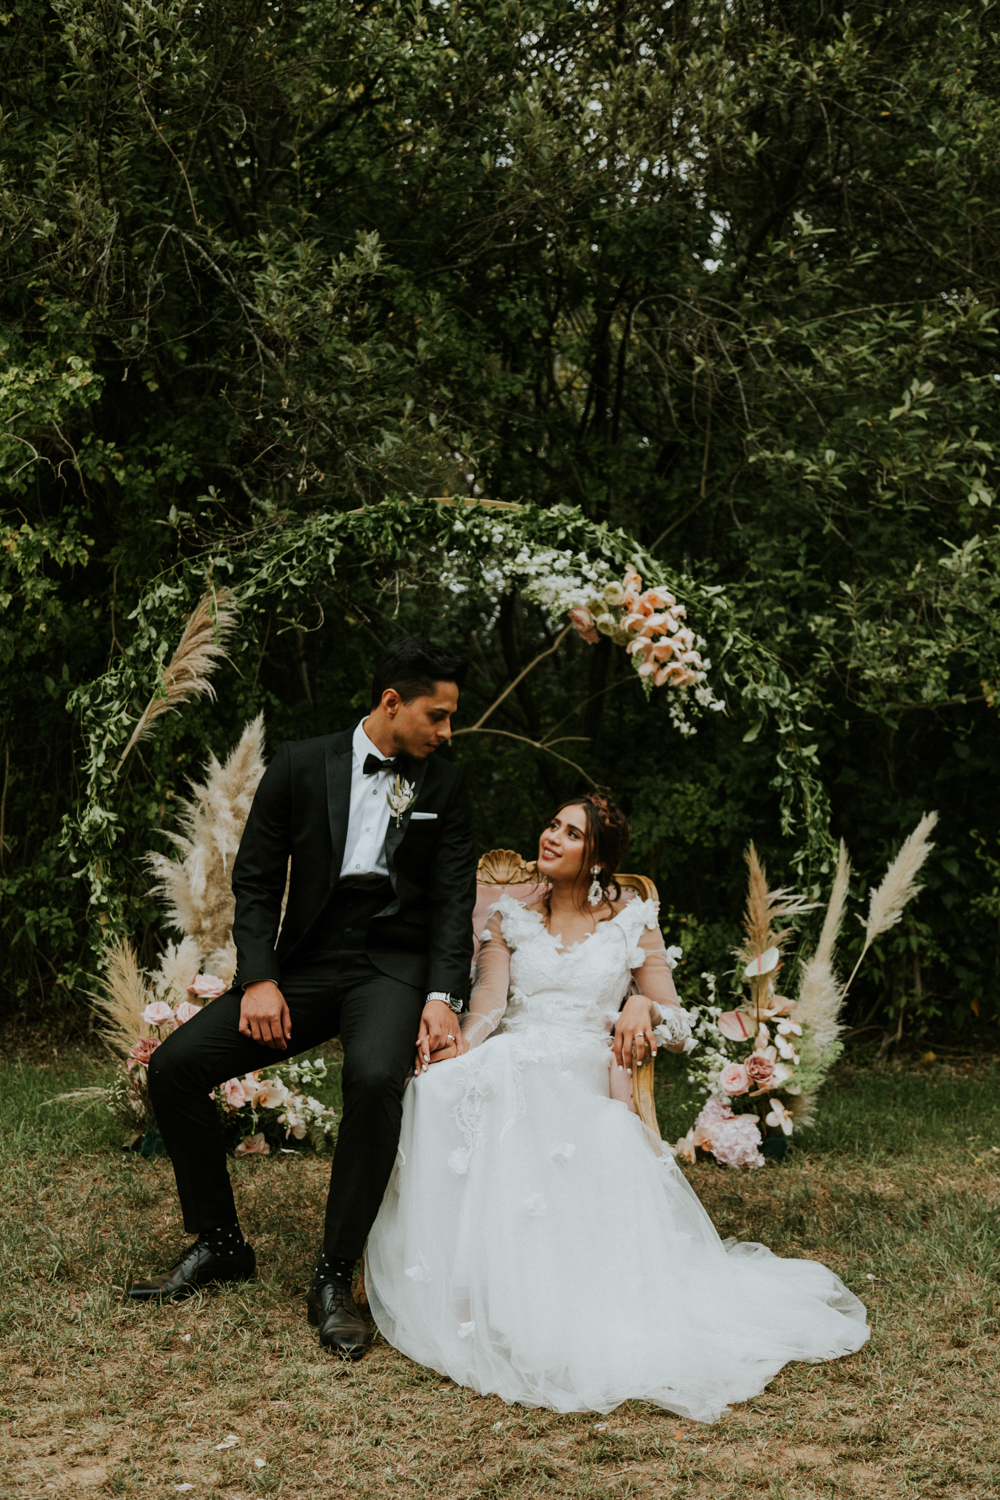 Forest Wedding Cape Town - Bianca Asher Photography-49.jpg